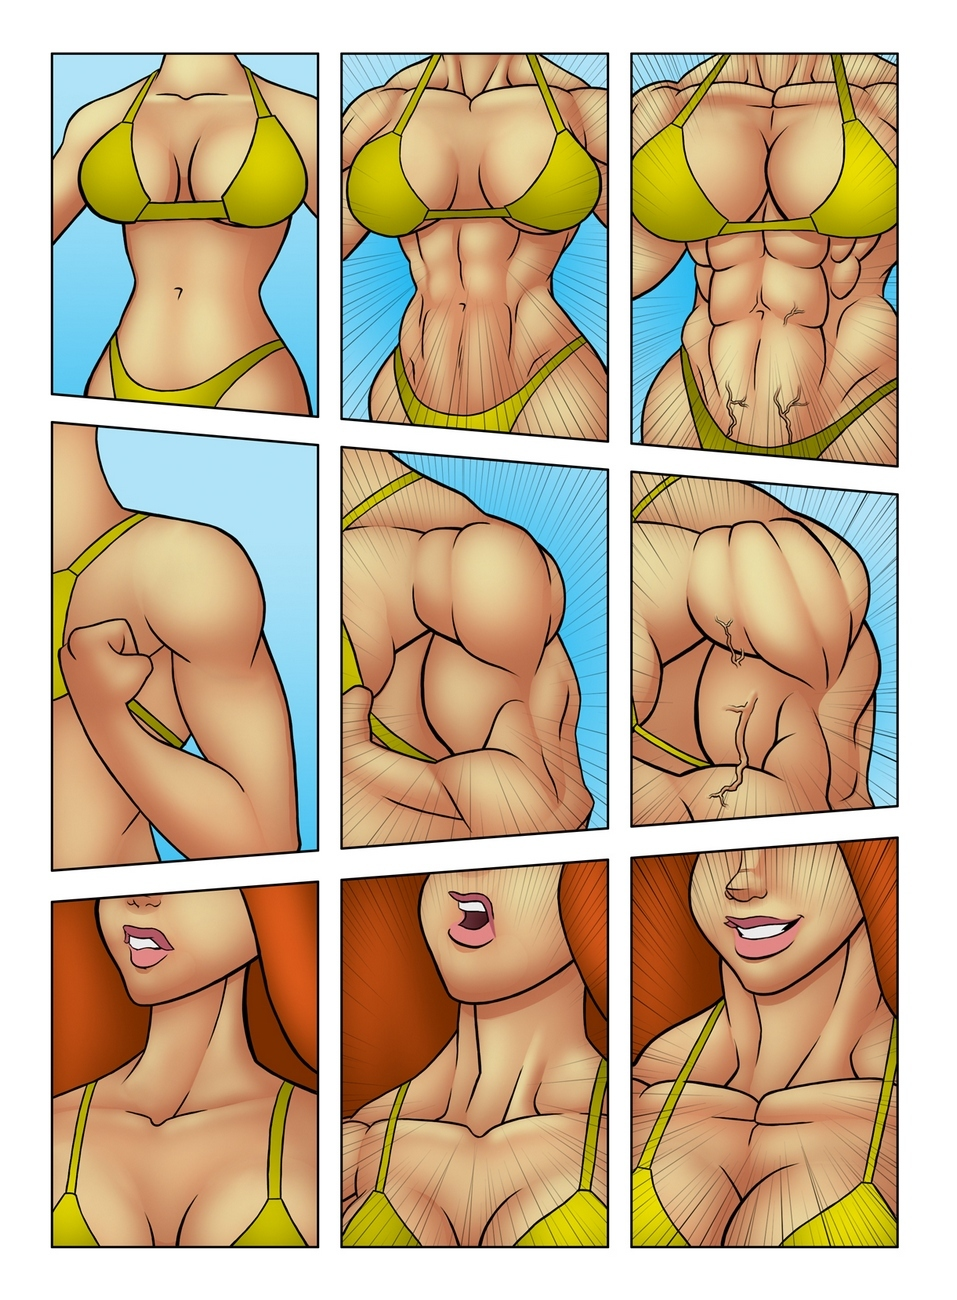 Muscle Contest 6 free sex comic